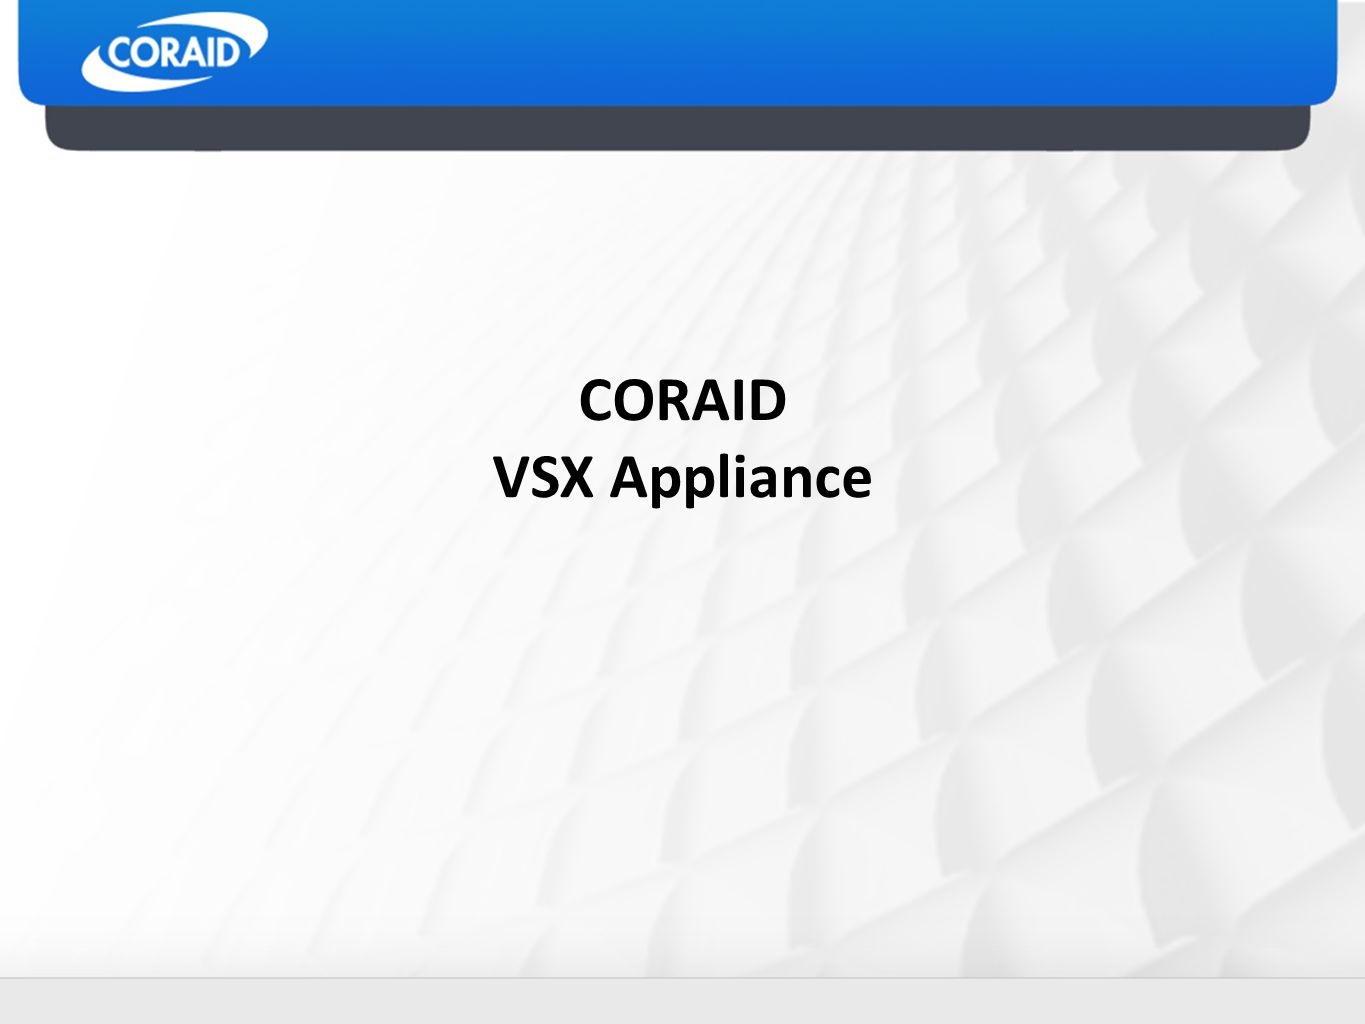 CORAID VSX Appliance